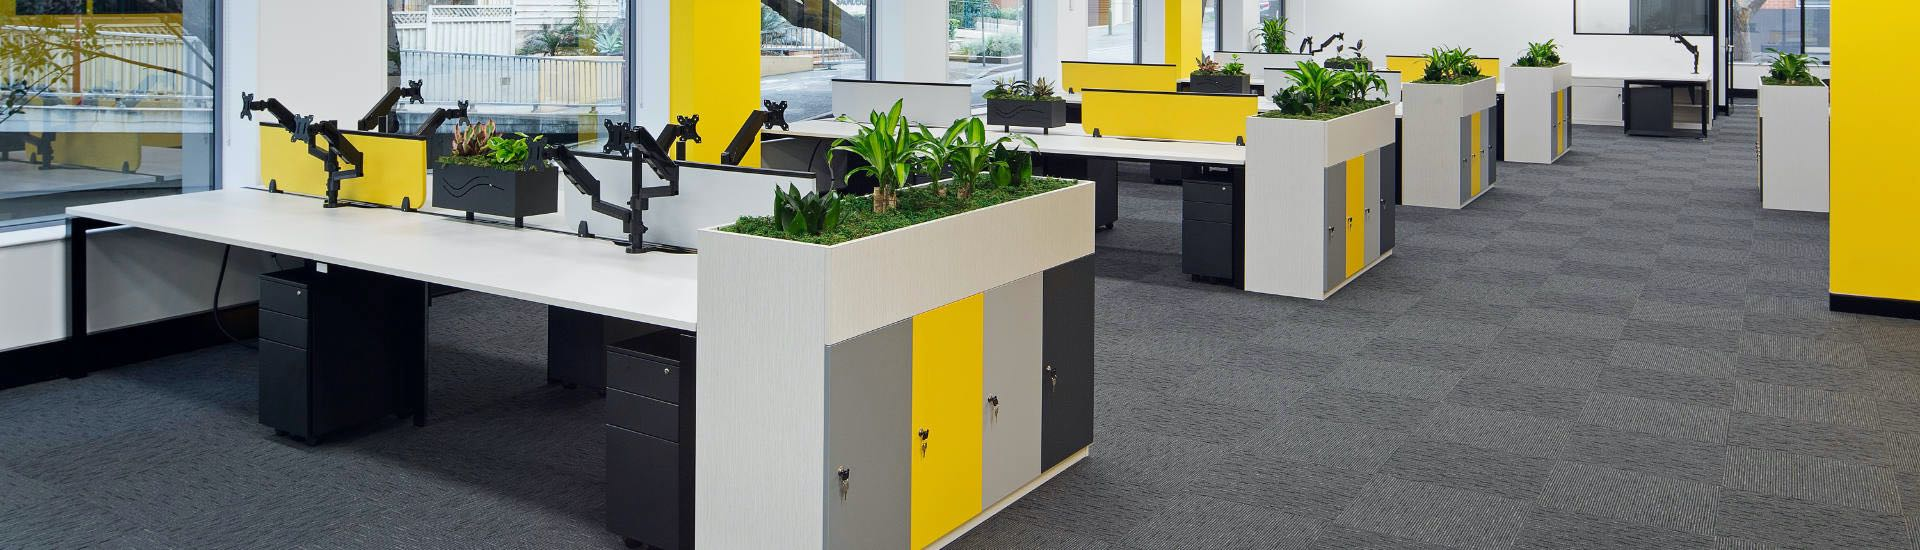 Commercial Office Furniture Design fitout by Infinity Commercial Furniture